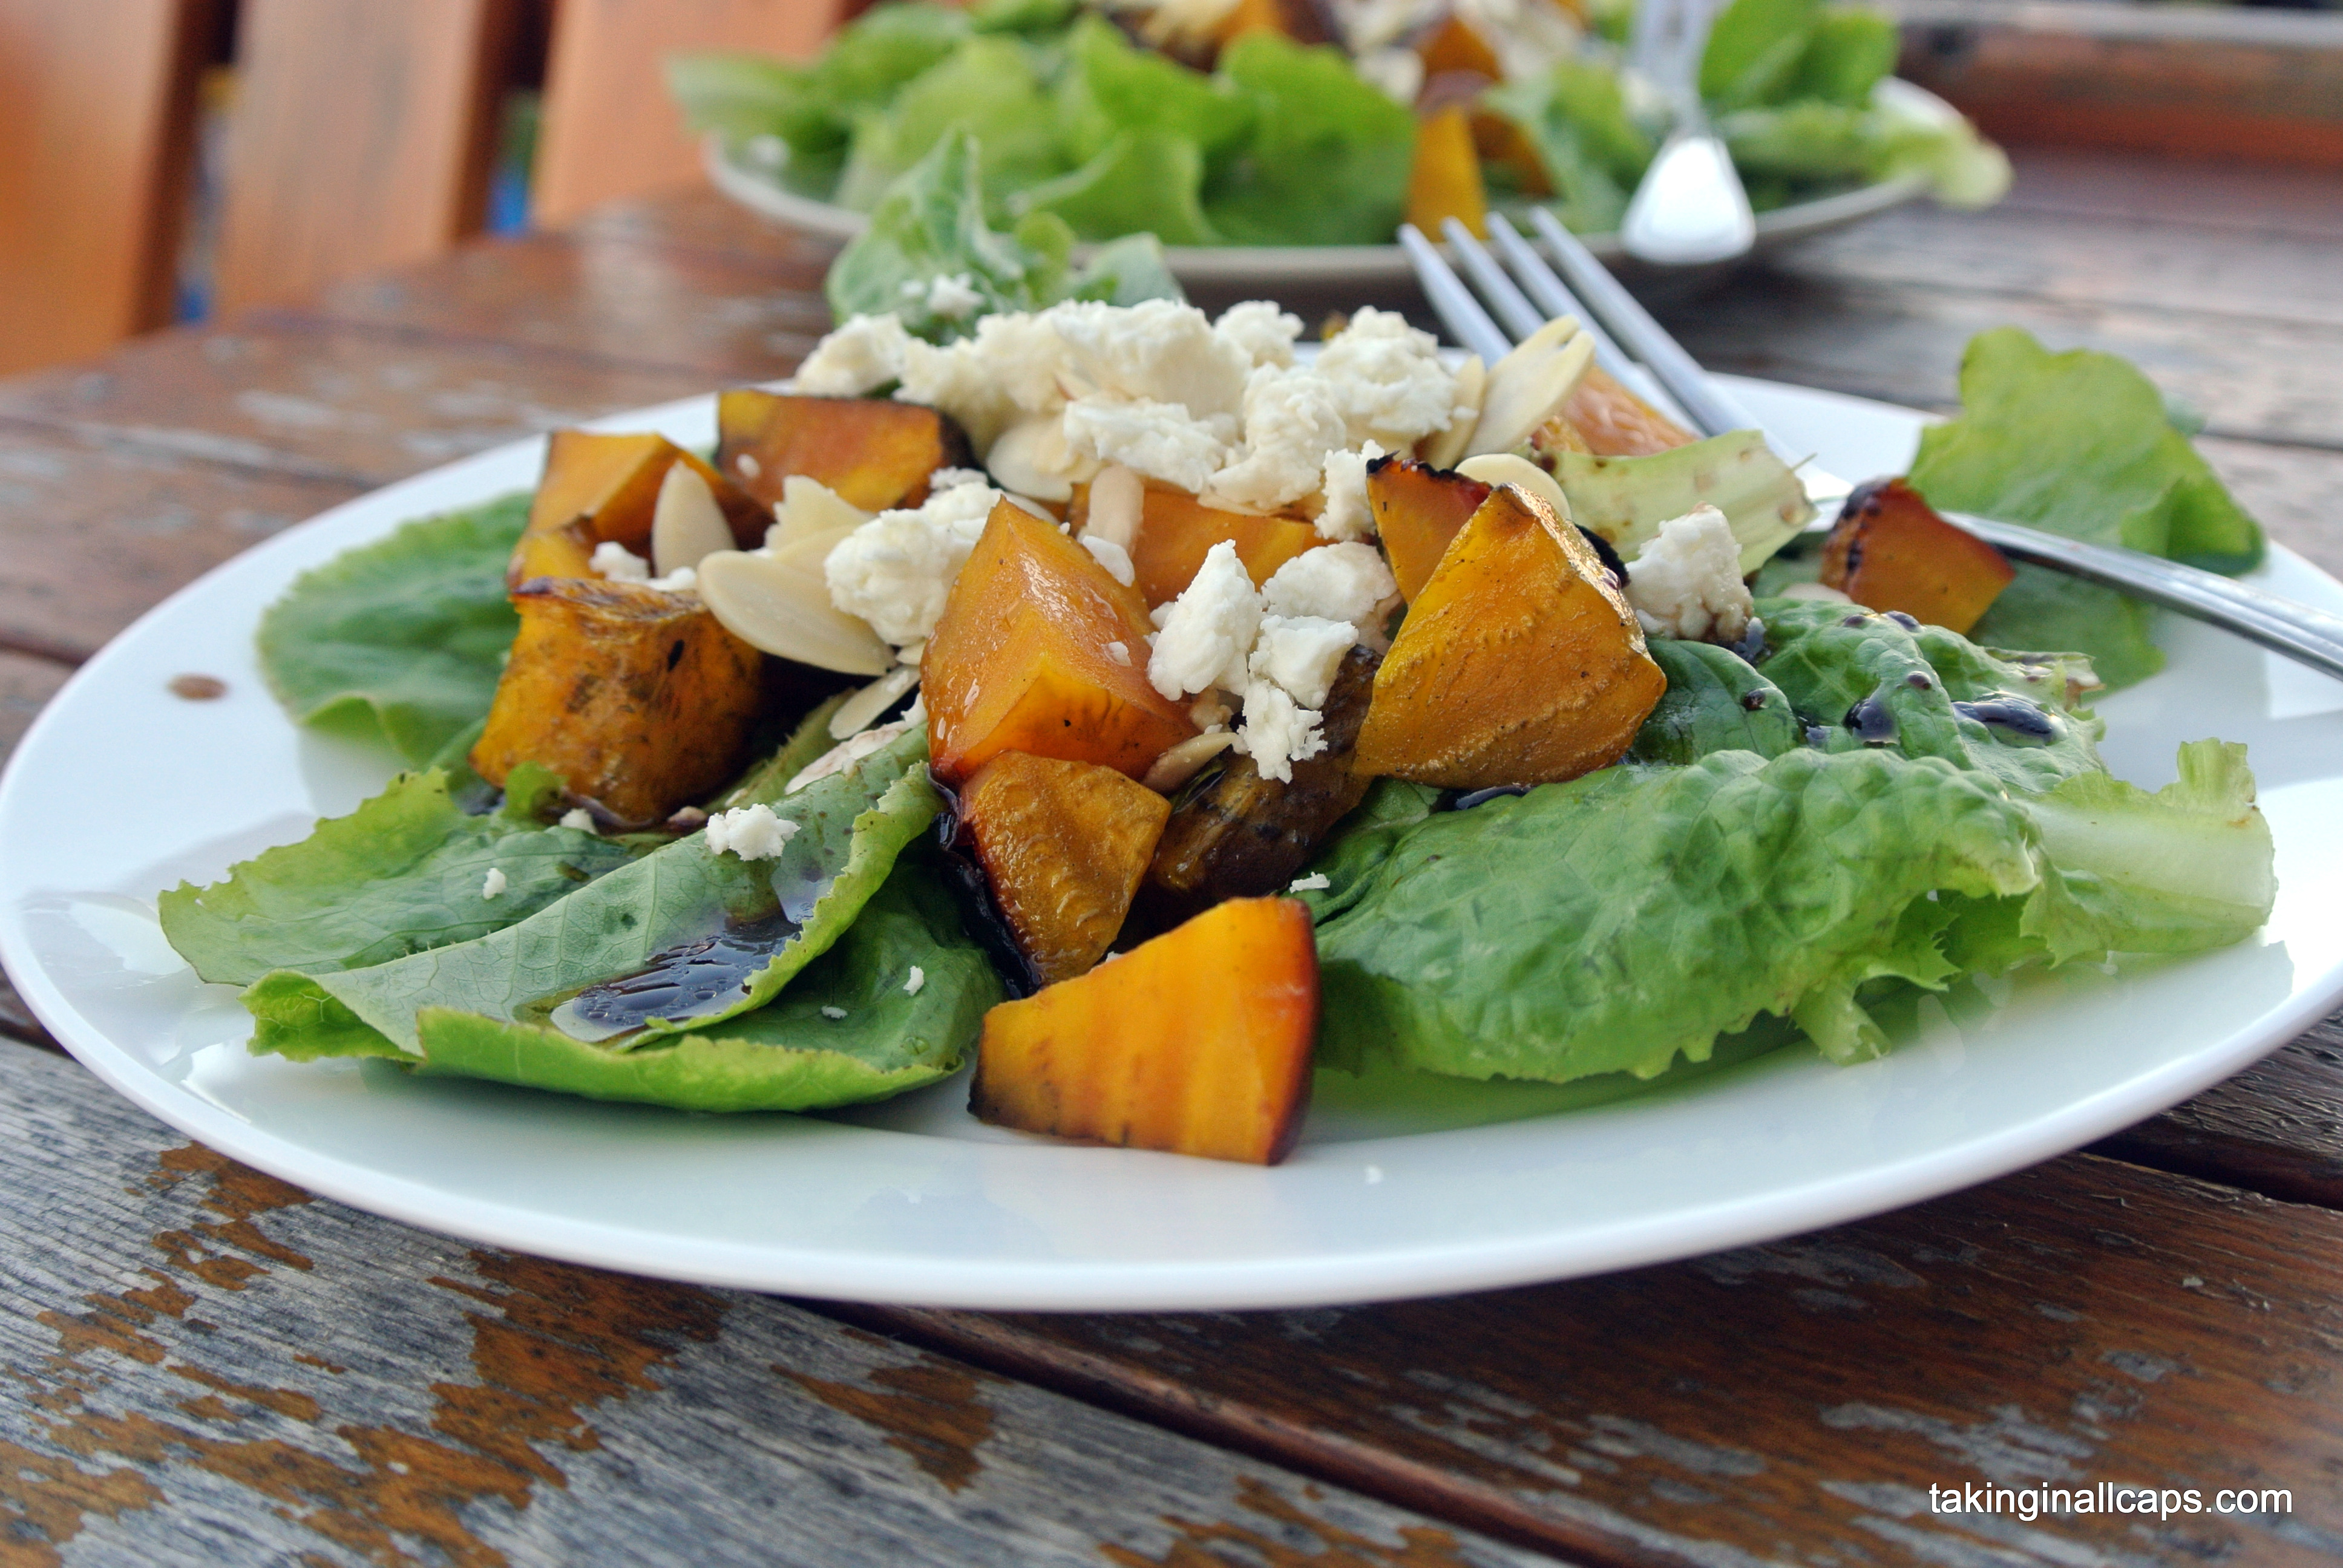 Salad #32 - Roasted Yellow Beet Salad with Feta - Talking in ALL CAPS